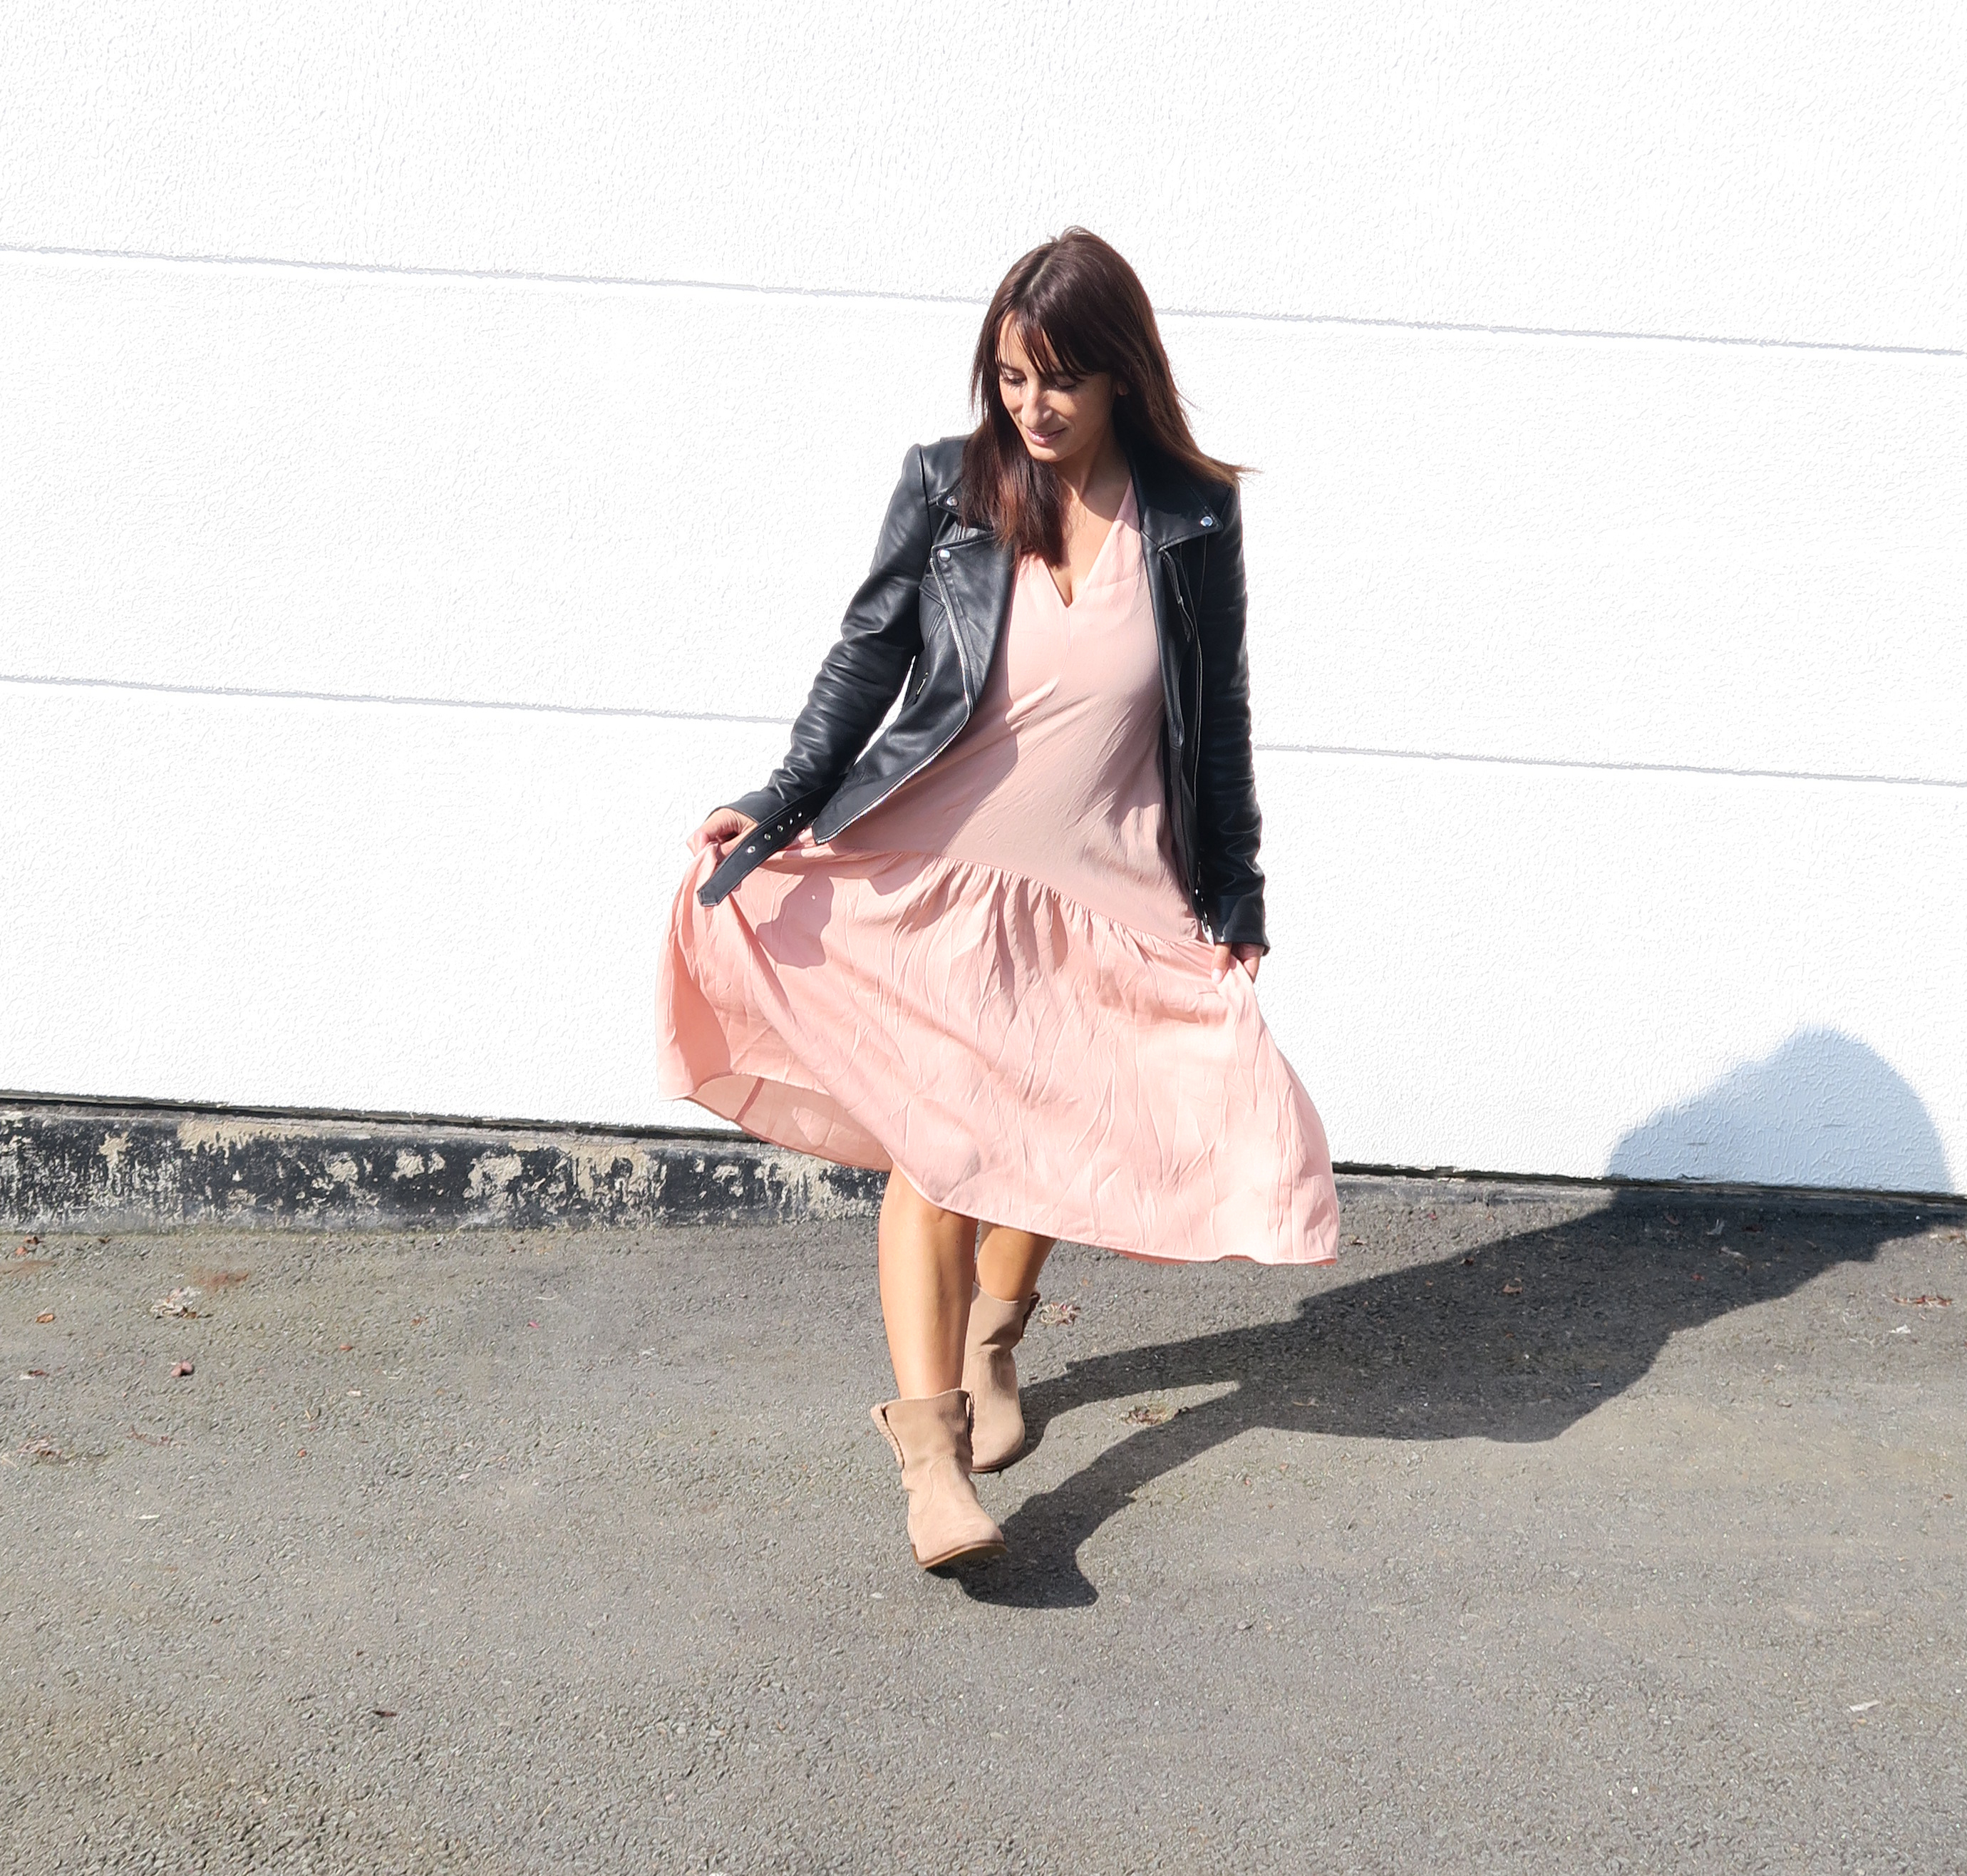 Modesalat-blogger-streetstyle-leather-bloggerstyle-ruffles-dress-4